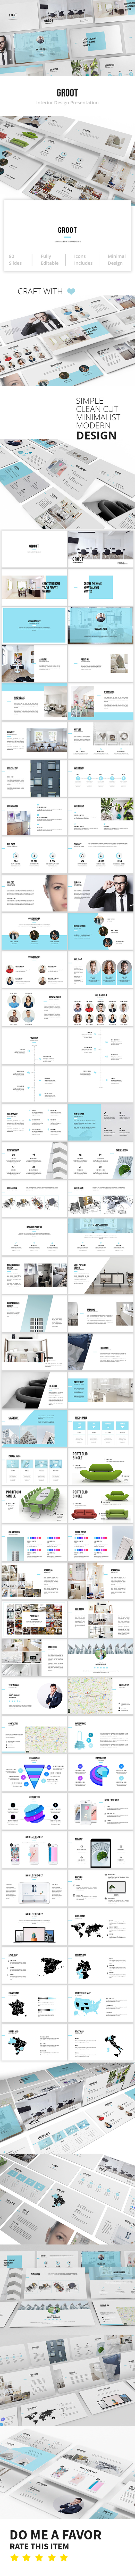 Groot - Interior Design Powerpoint Presentation - Business PowerPoint Templates